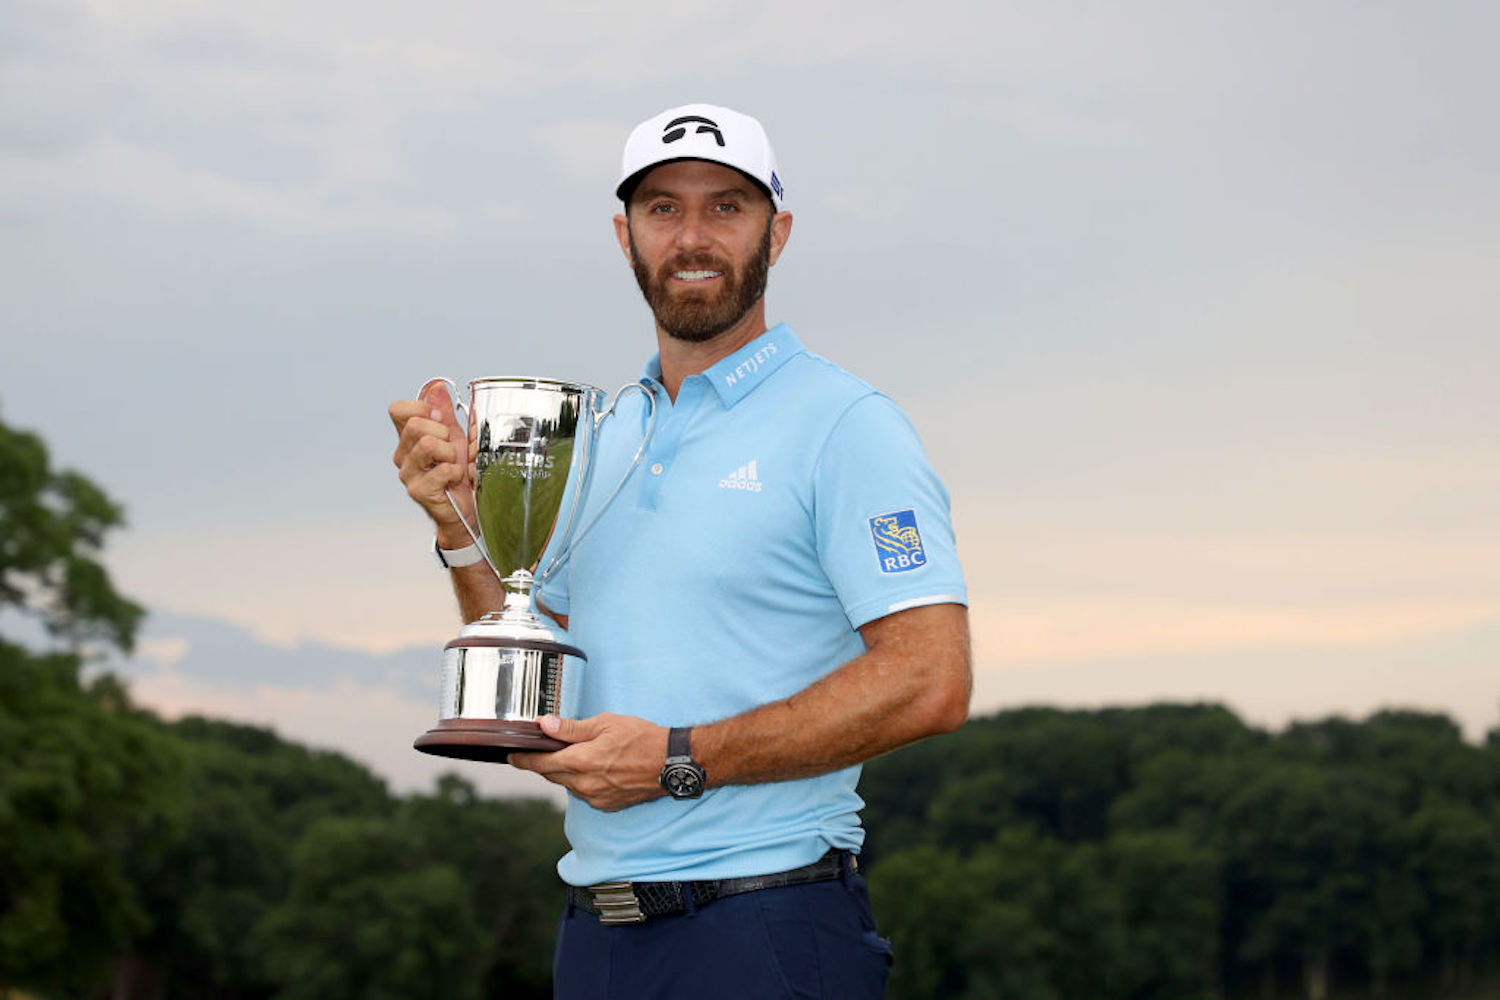 Dustin Johnson is just 36 years old, but he's already earned enough money on the PGA Tour to put him fifth on the all-time list.